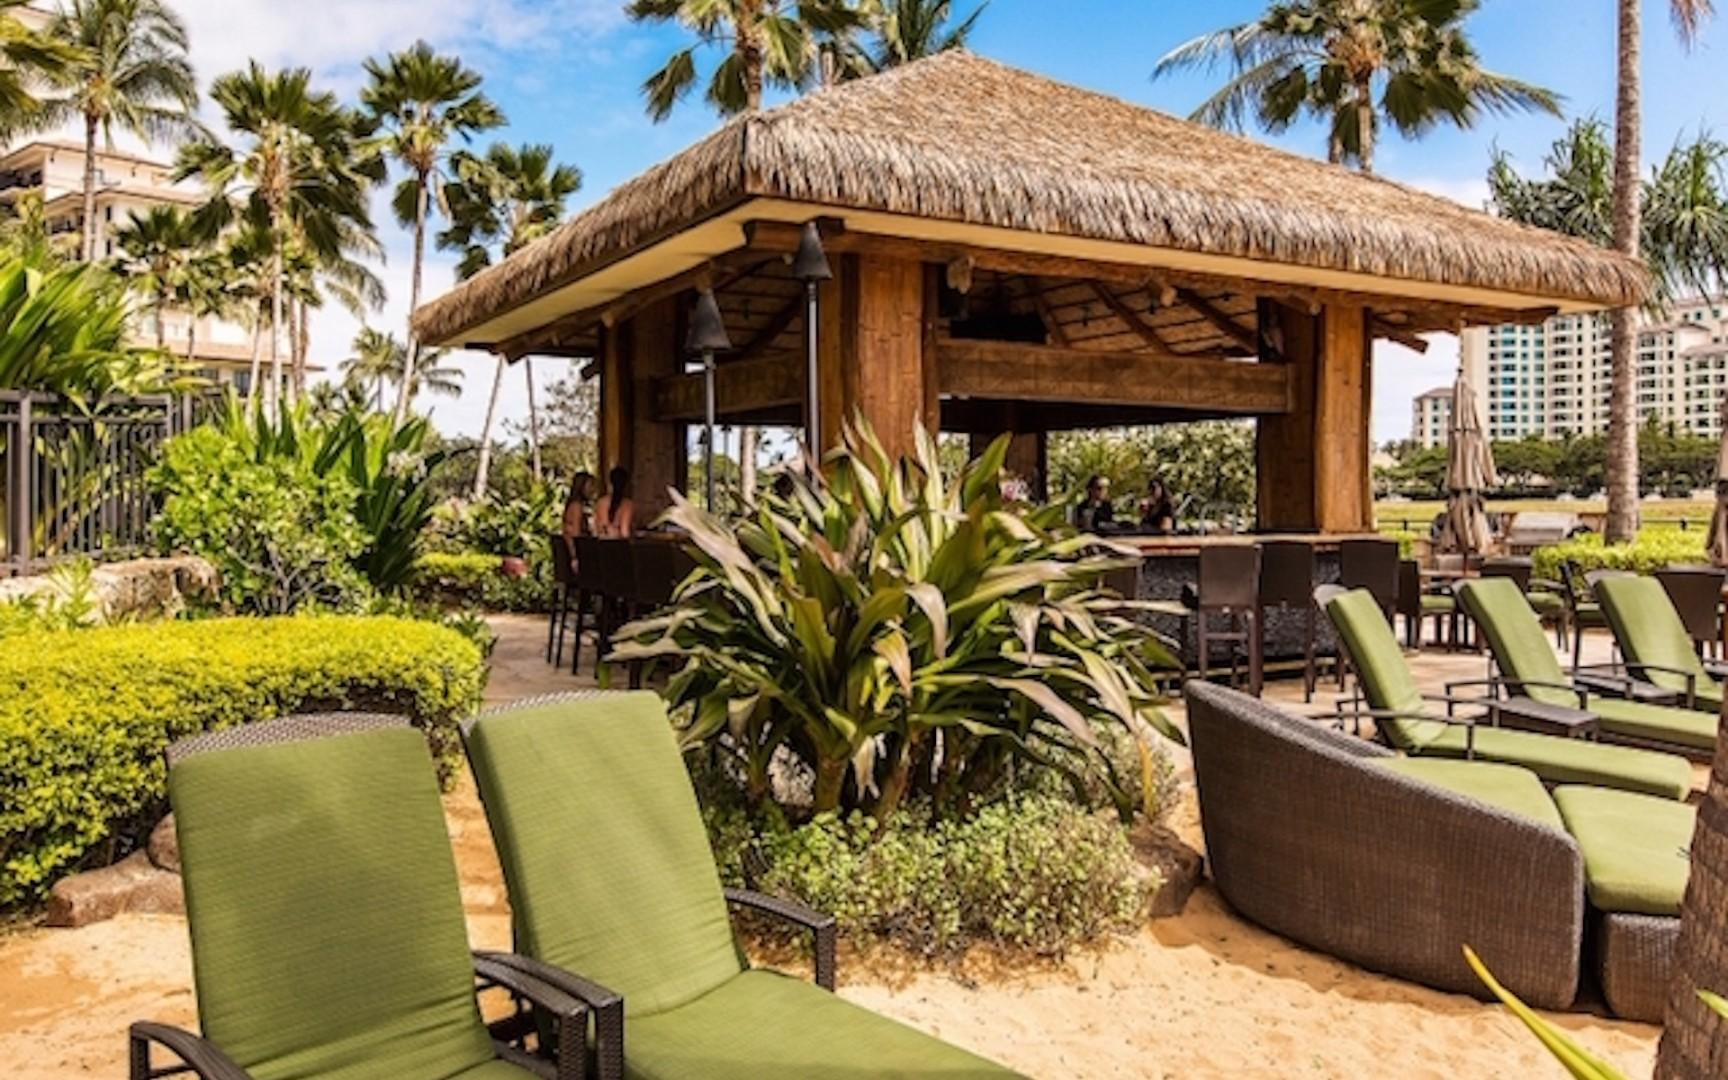 Beach Bar a short distance from your villa, private for resort guests only